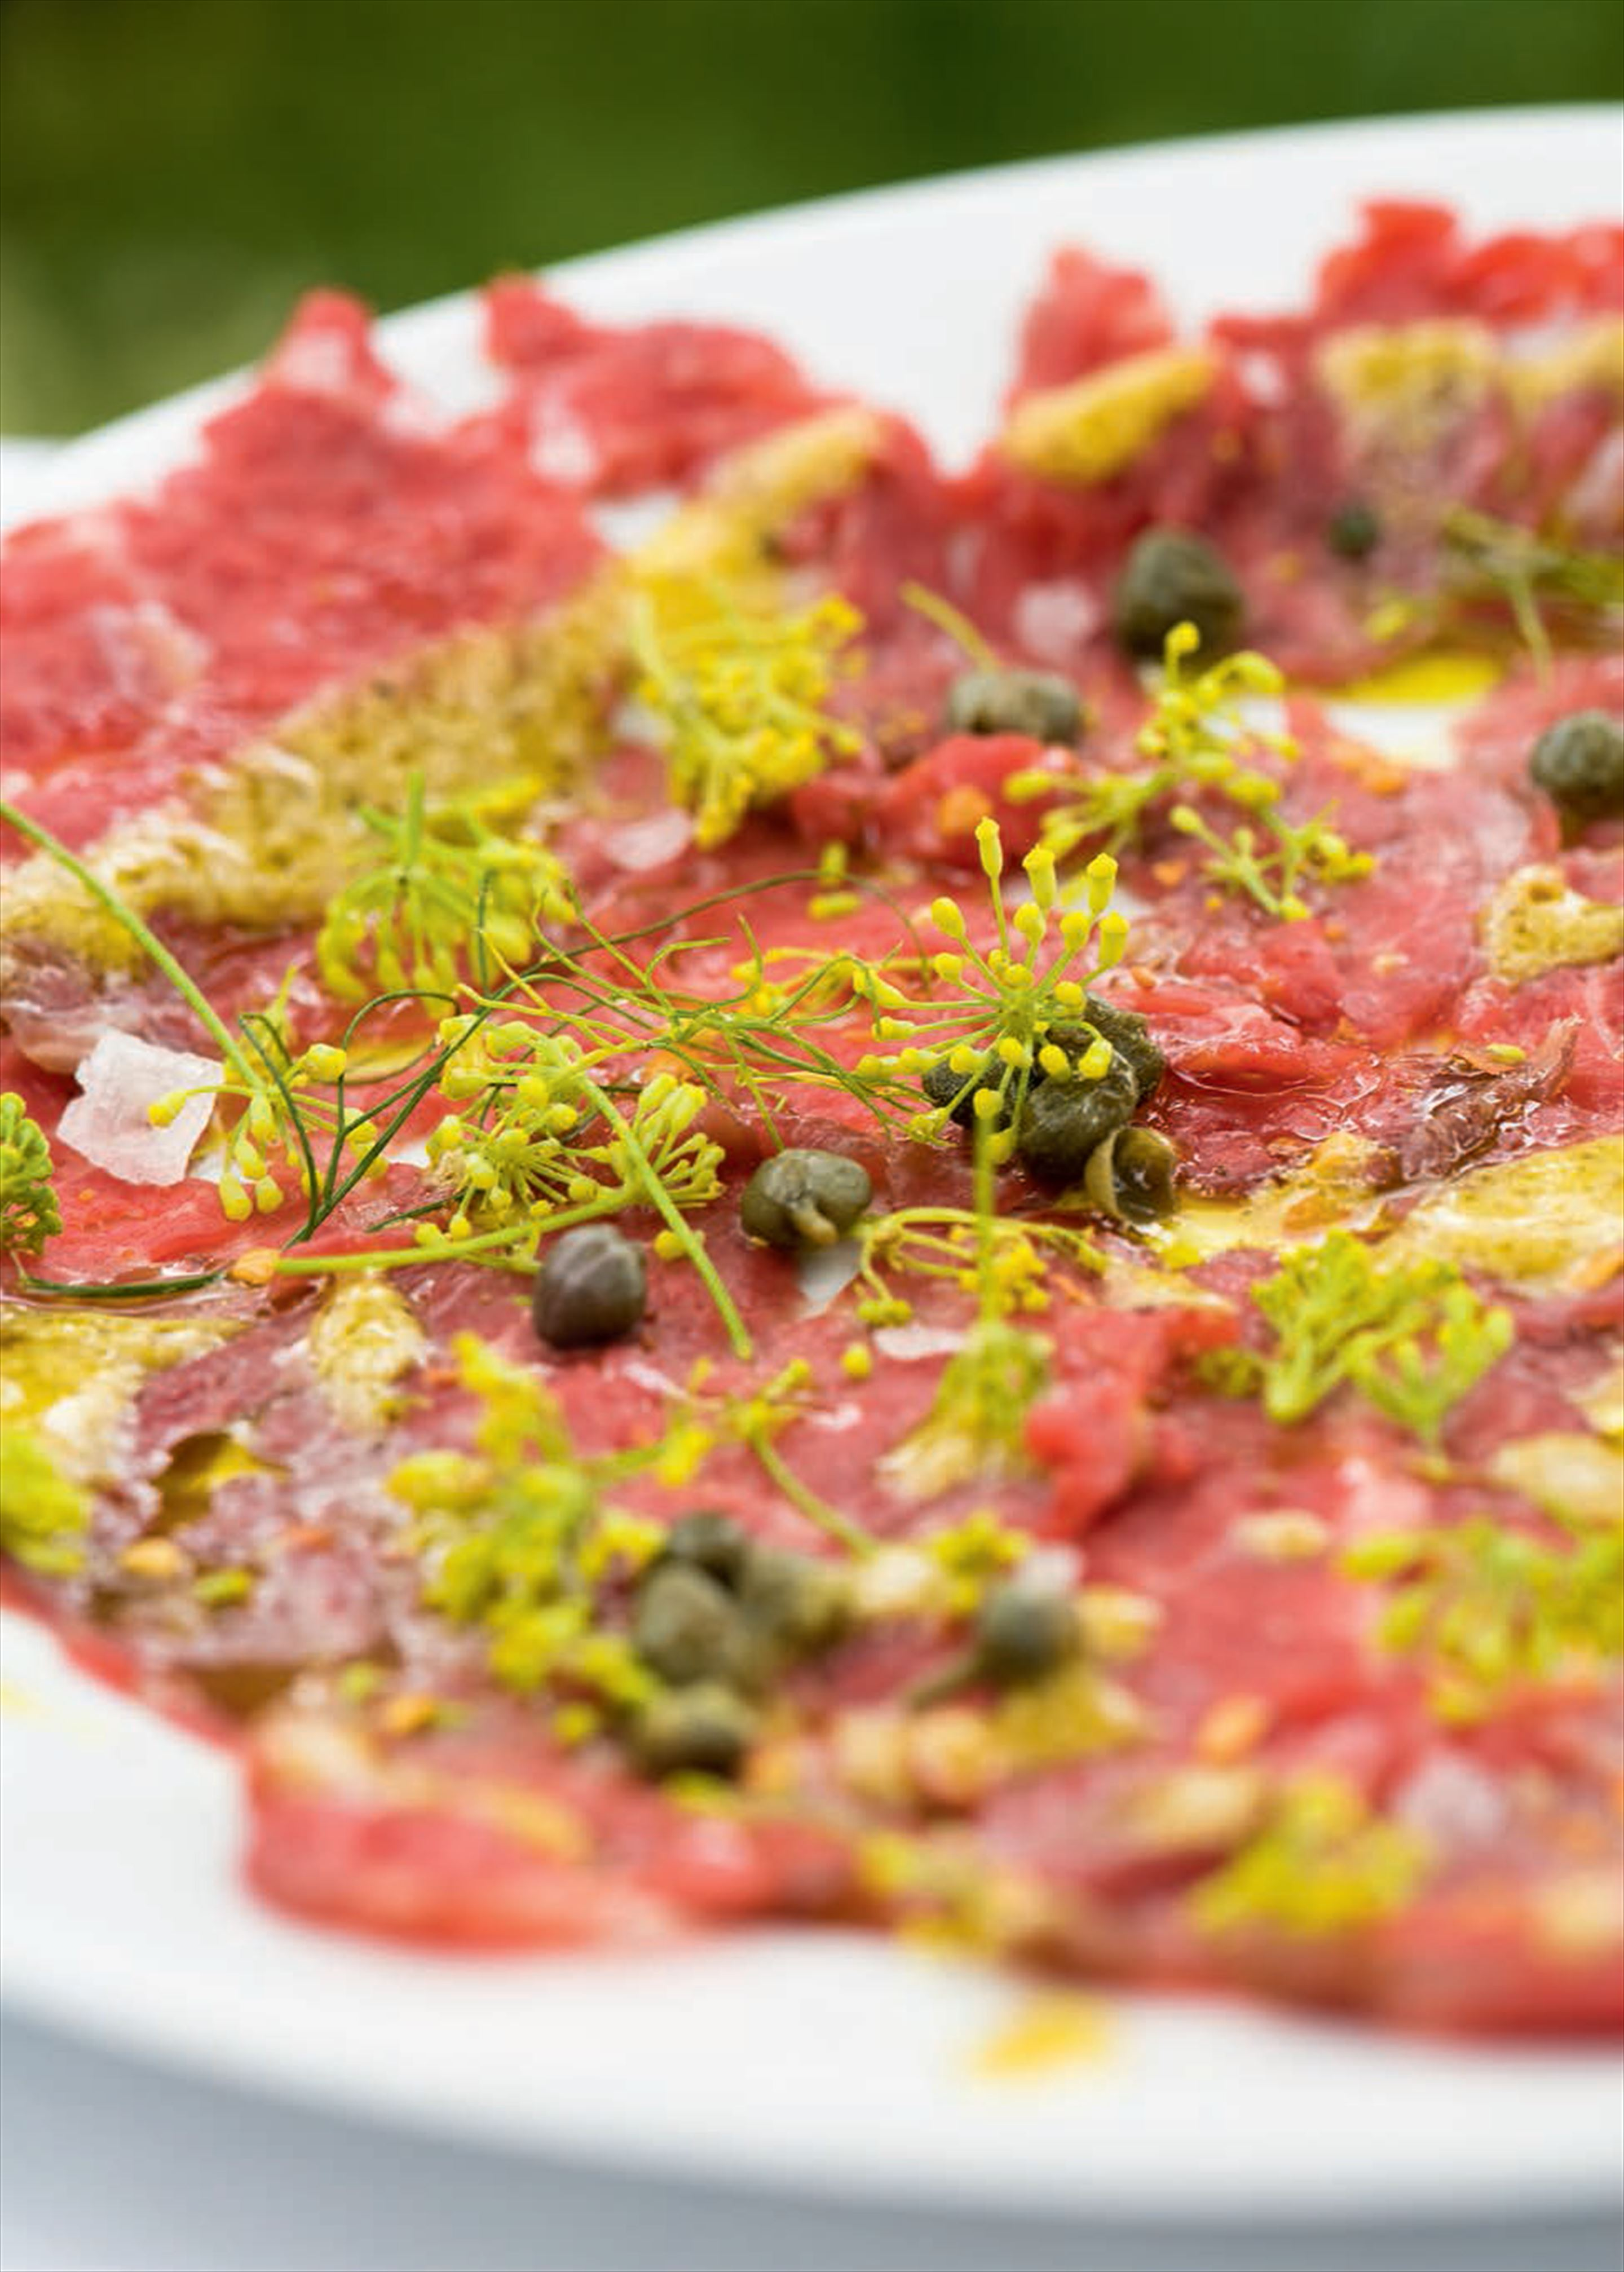 Beef carpaccio with fennel flowers